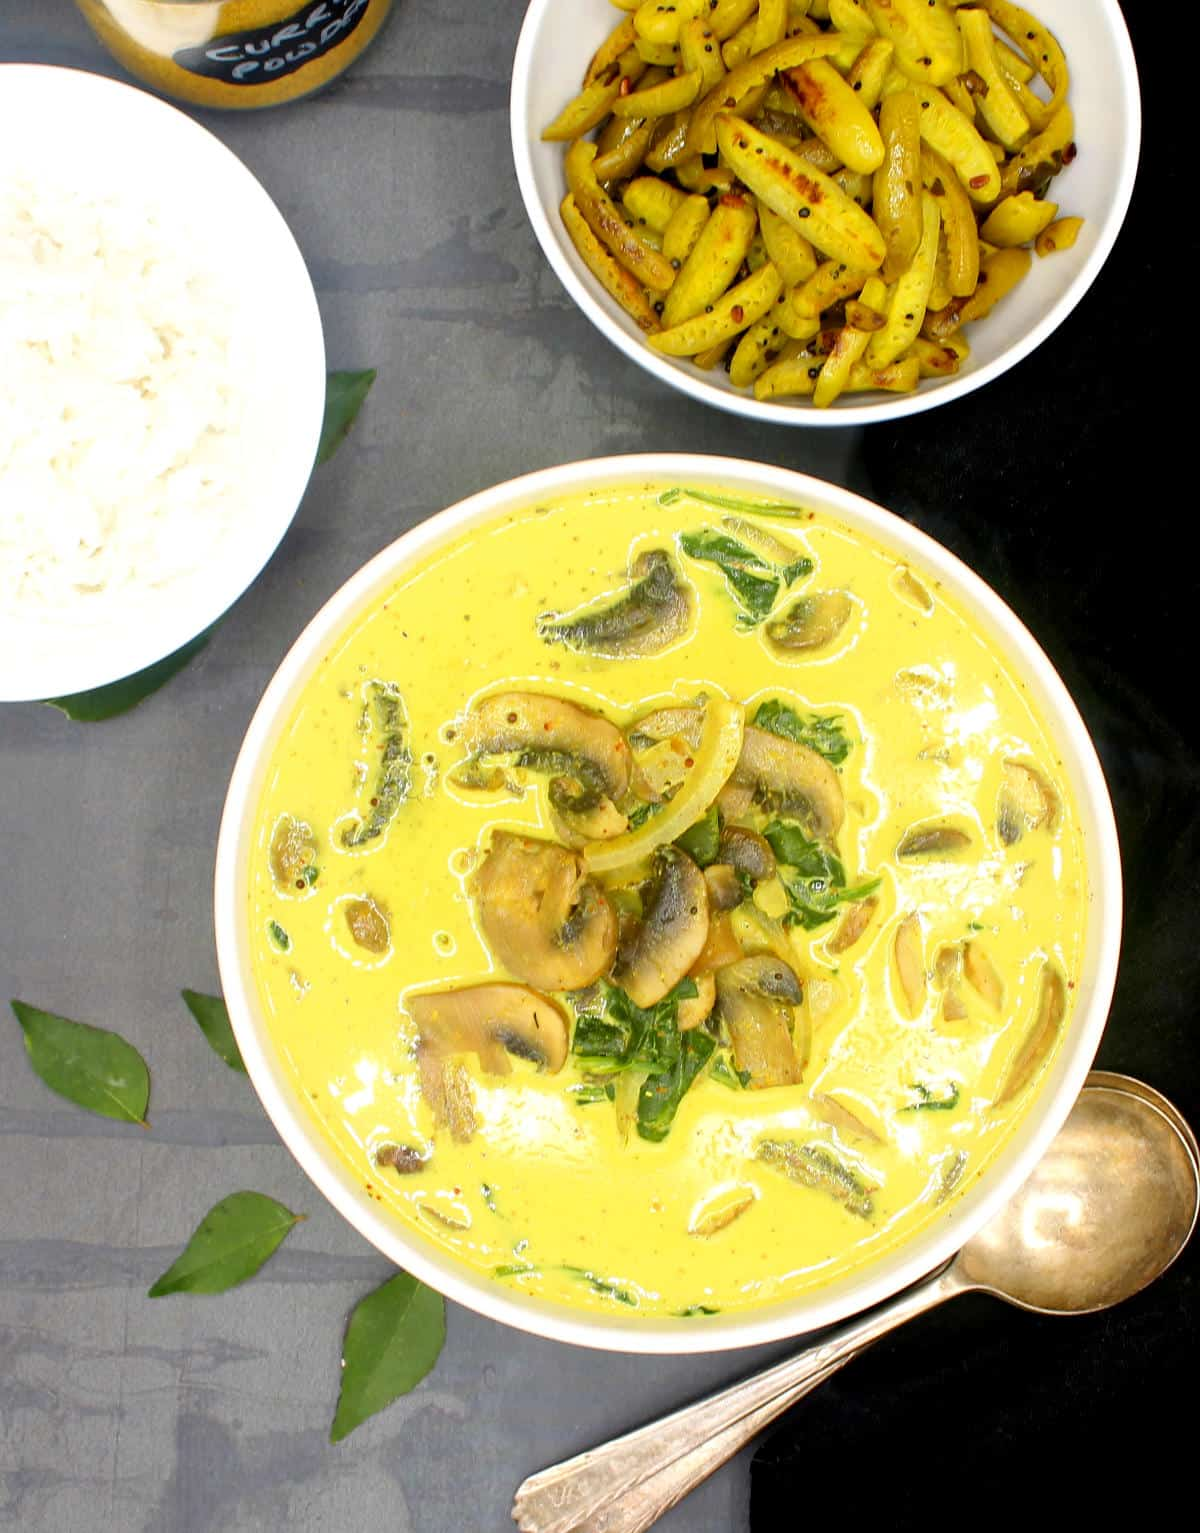 Photo of creamy mushroom spinach curry in a white bowl with rice and a vegetable side.